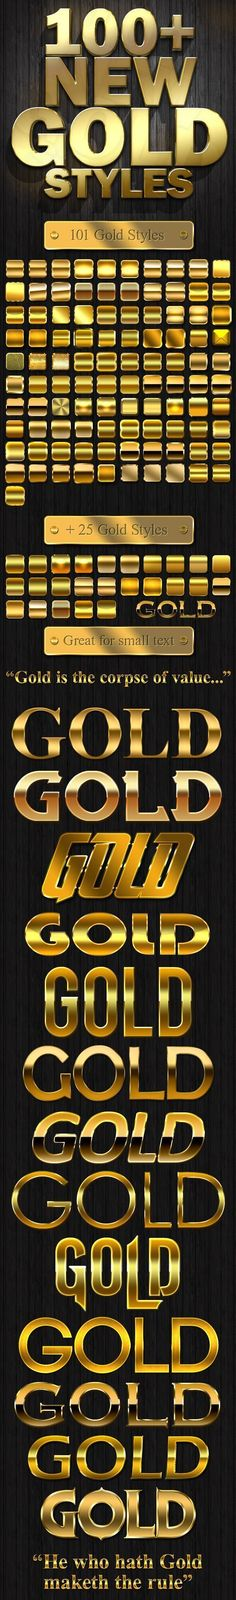 Now you can apply amazing Gold and Silver nuances to your texts and your banners on Adobe Photoshop by using the best of gold and silver styles. You can download them in .zip format and extract them before applying to your creations. They save you tons of time each time you want to apply a distinct gold or silver tone to your Photoshop file.